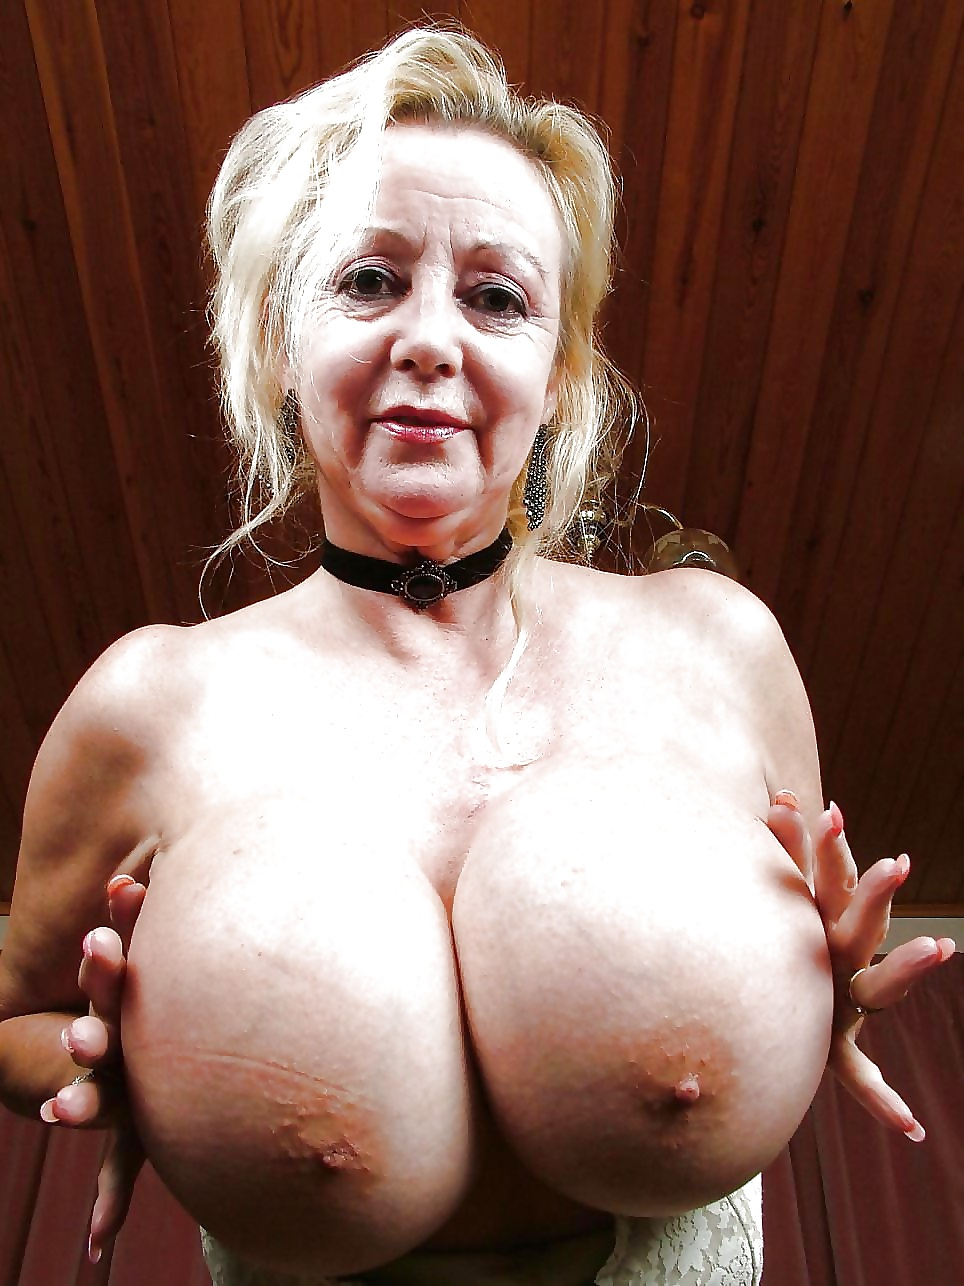 hottest-grandma-big-boobs-facial-image